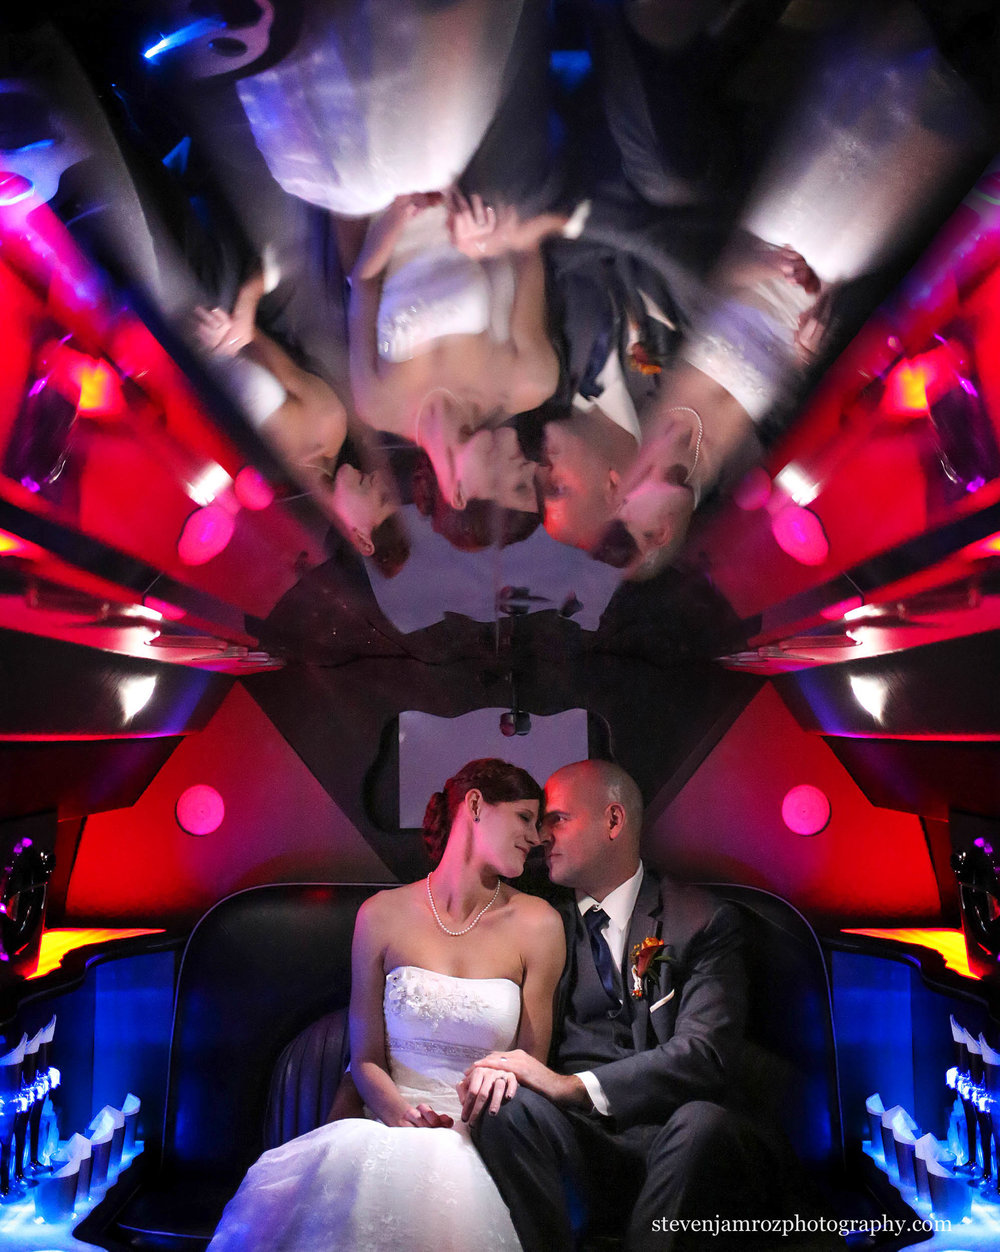 limo-ride-after-wedding-hudson-manor-steven-jamroz-photography-0588.jpg